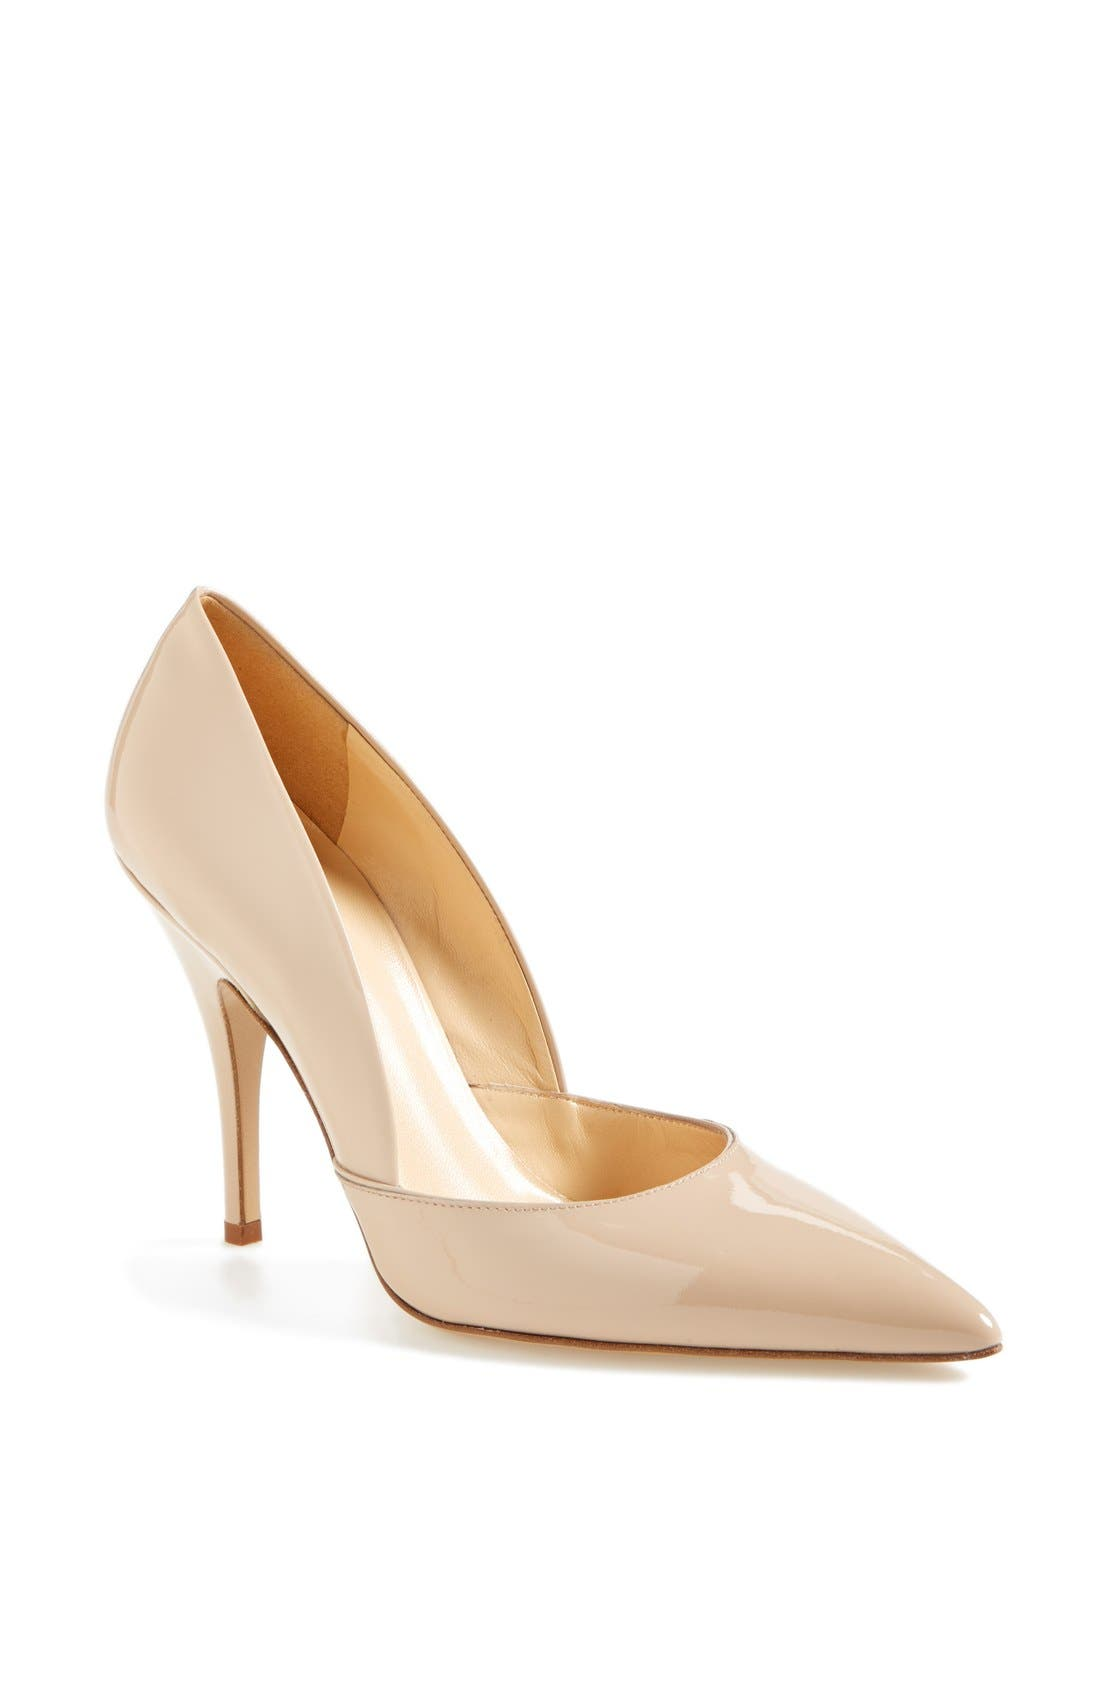 Alternate Image 1 Selected - kate spade new york 'lottie' pump (Women)